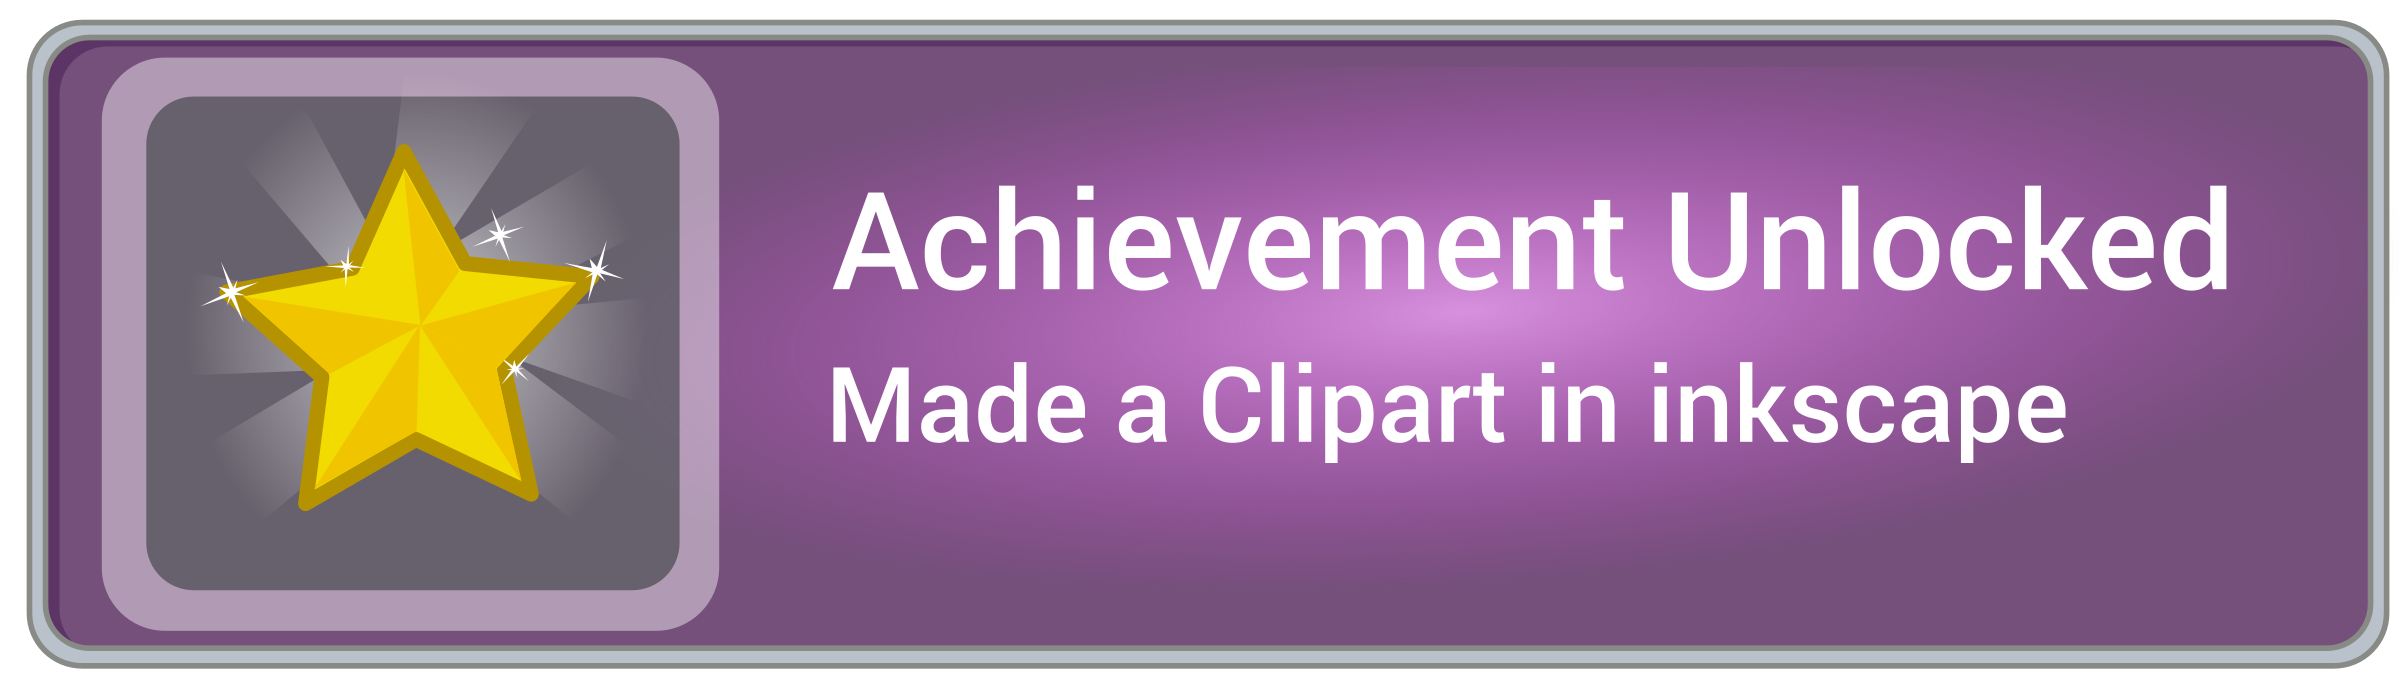 Achievement unlocked icon game with frame by monsterbraingames